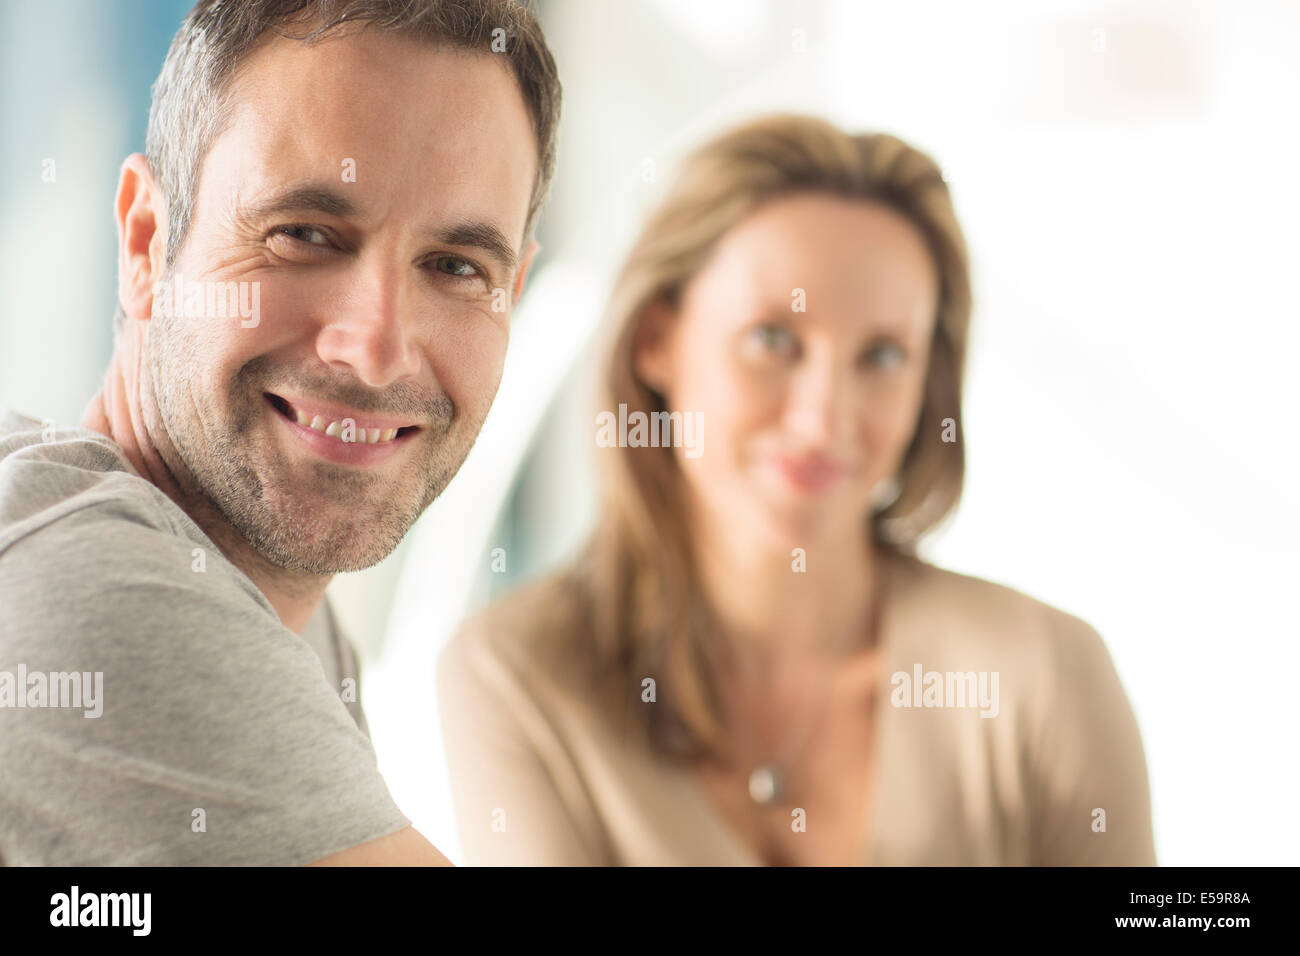 Close up of man's smiling face Photo Stock